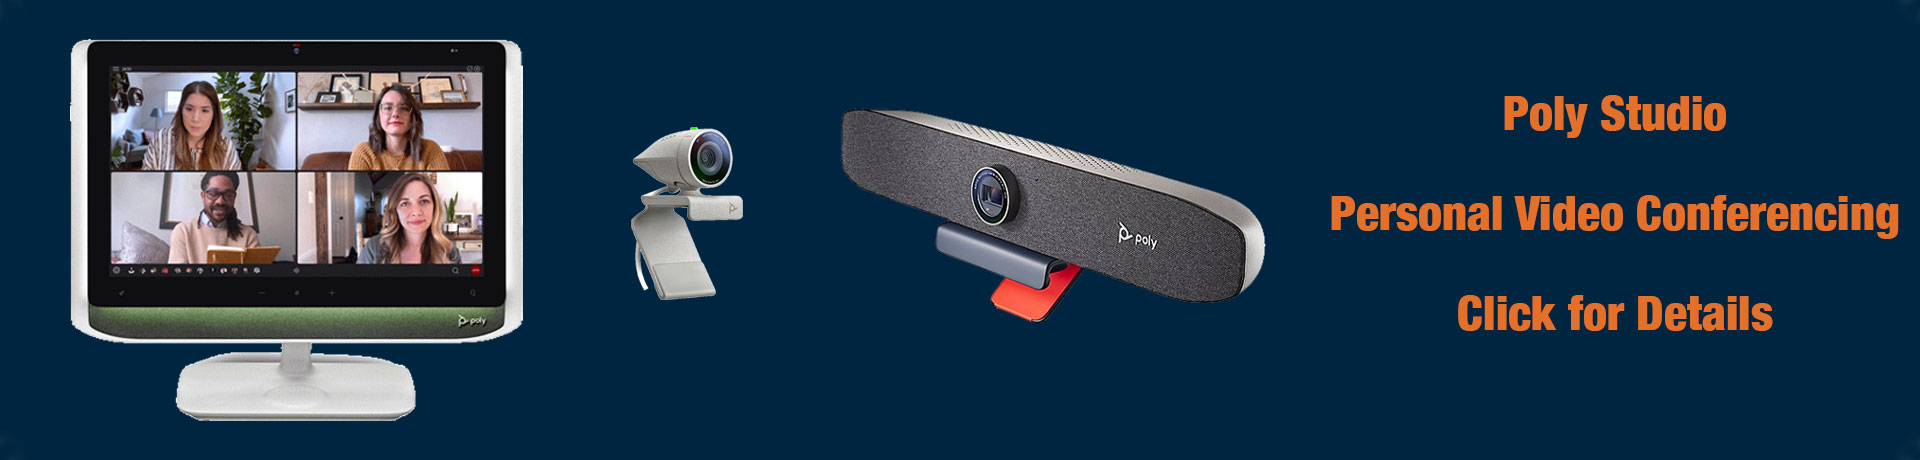 Poly P-Series Video Conferencing Devices